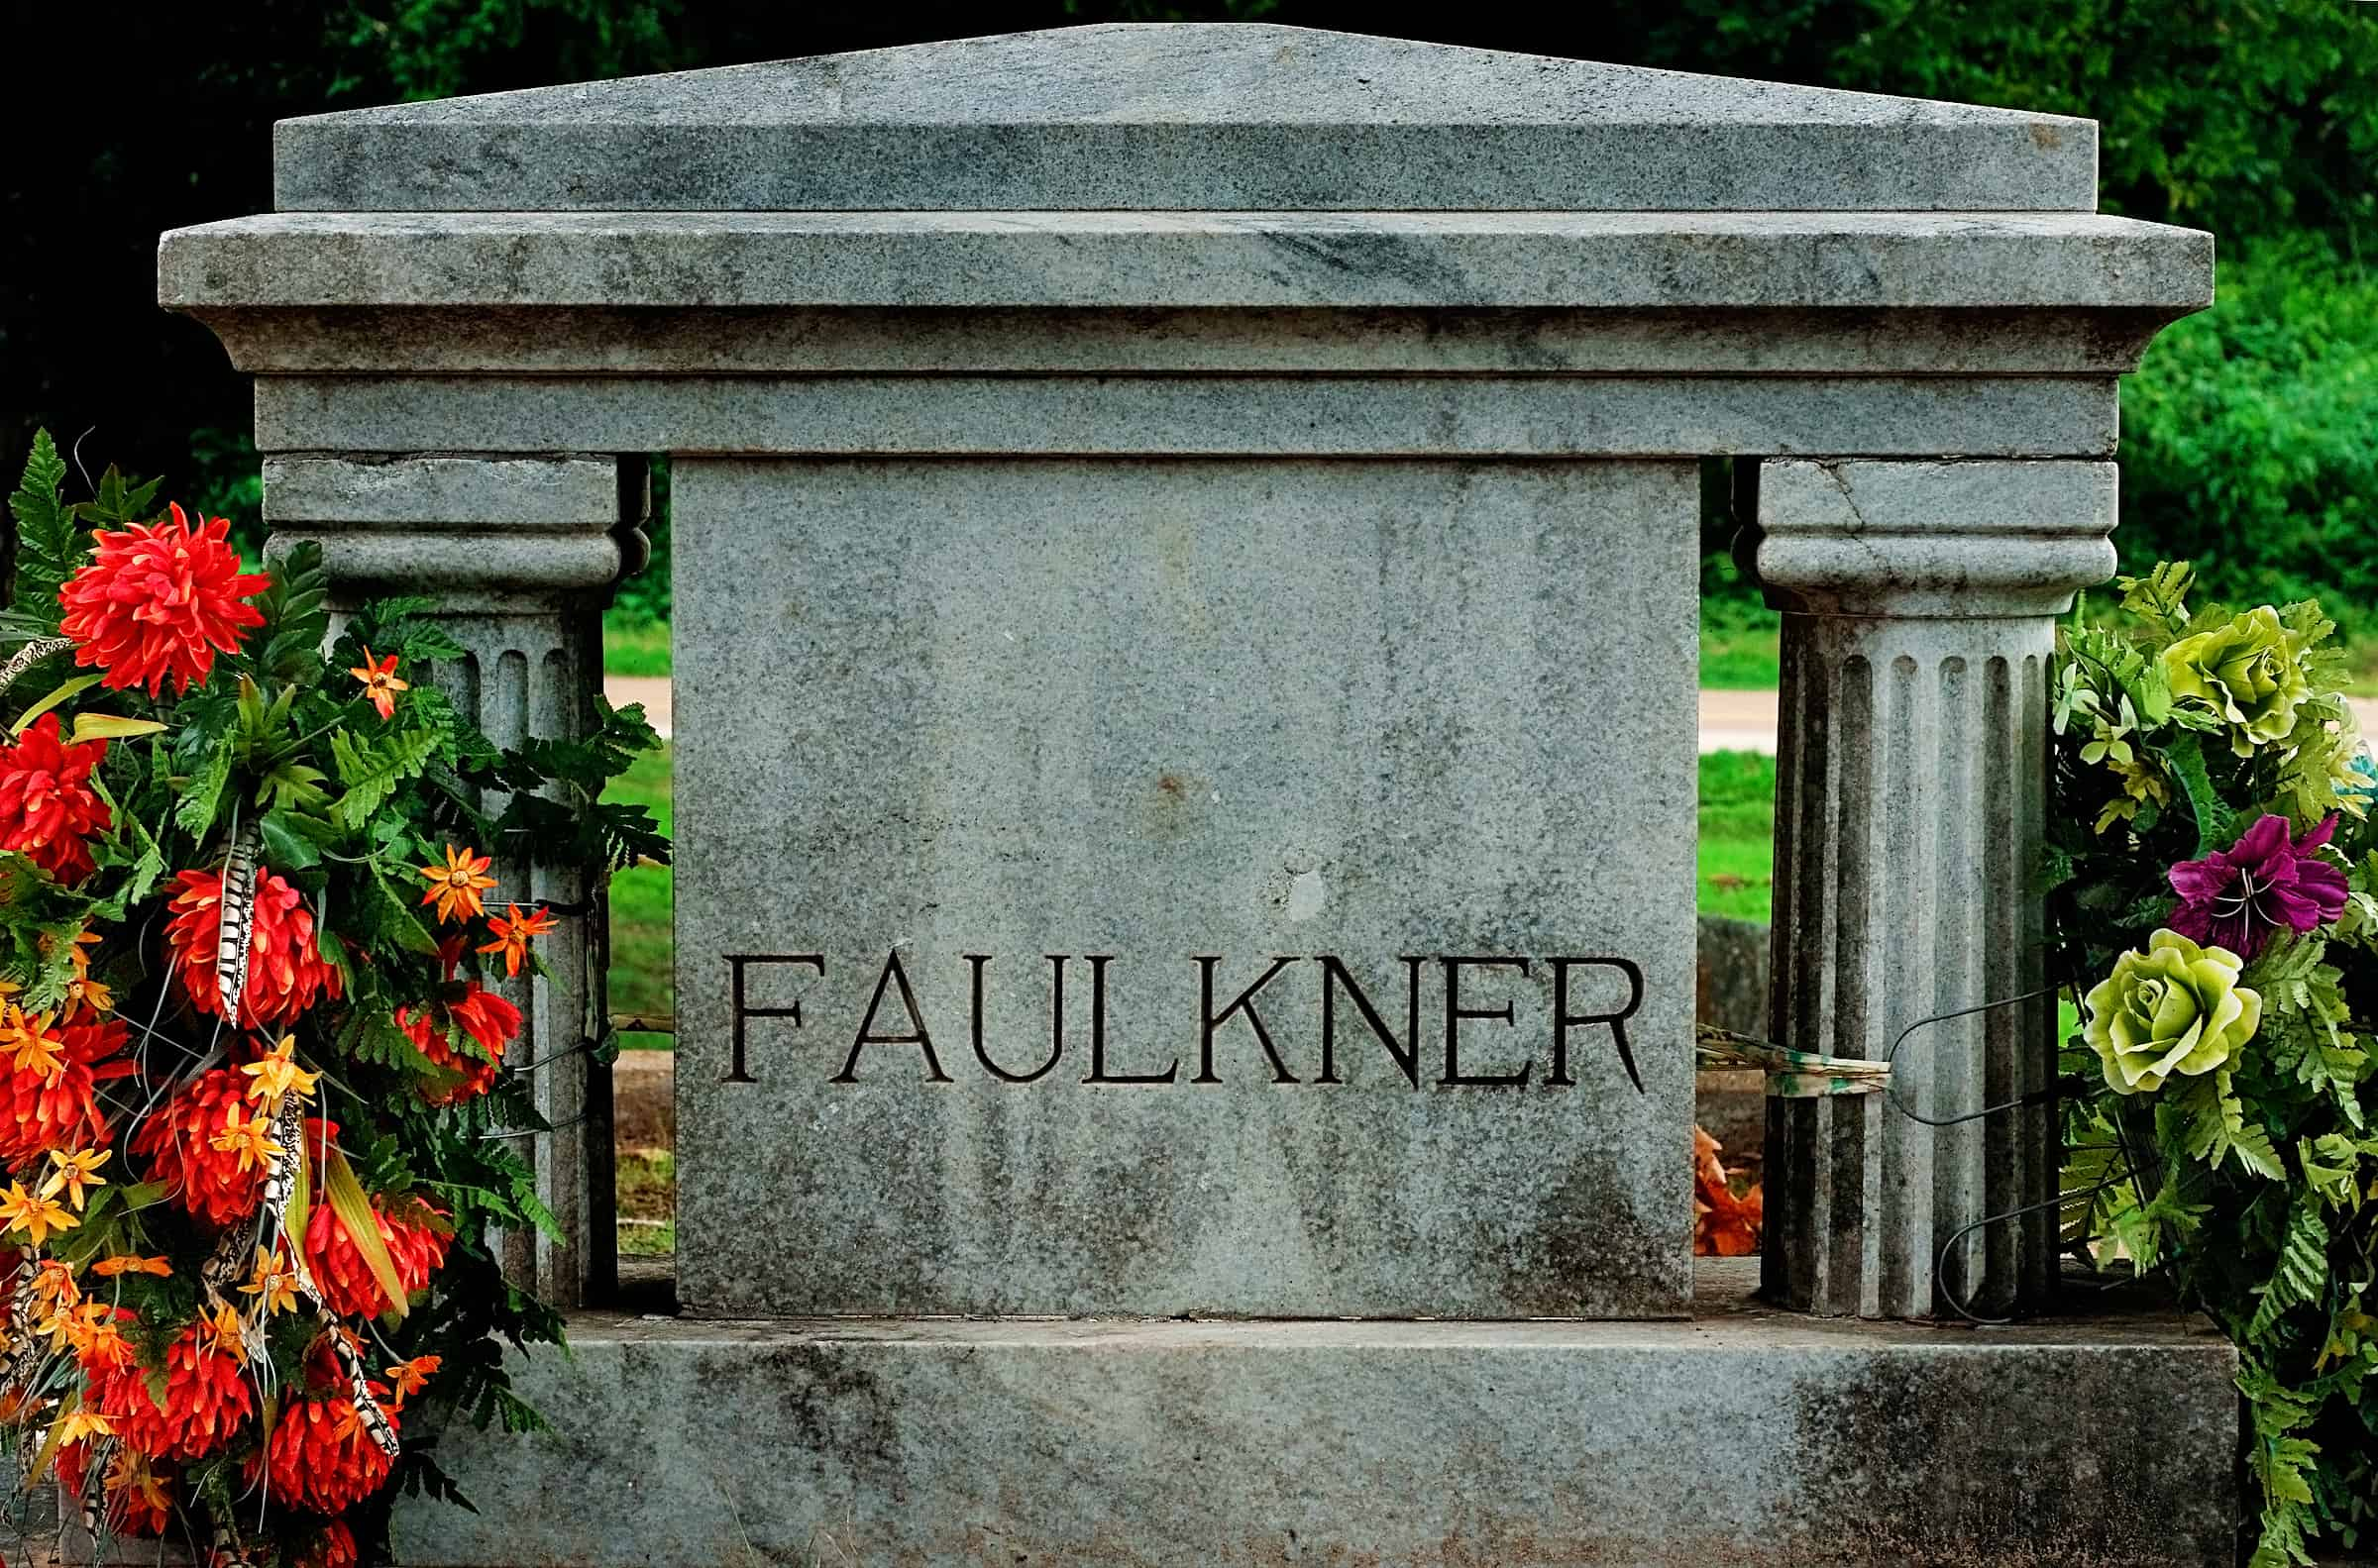 William Faulkner's grave in Oxford Mississippi